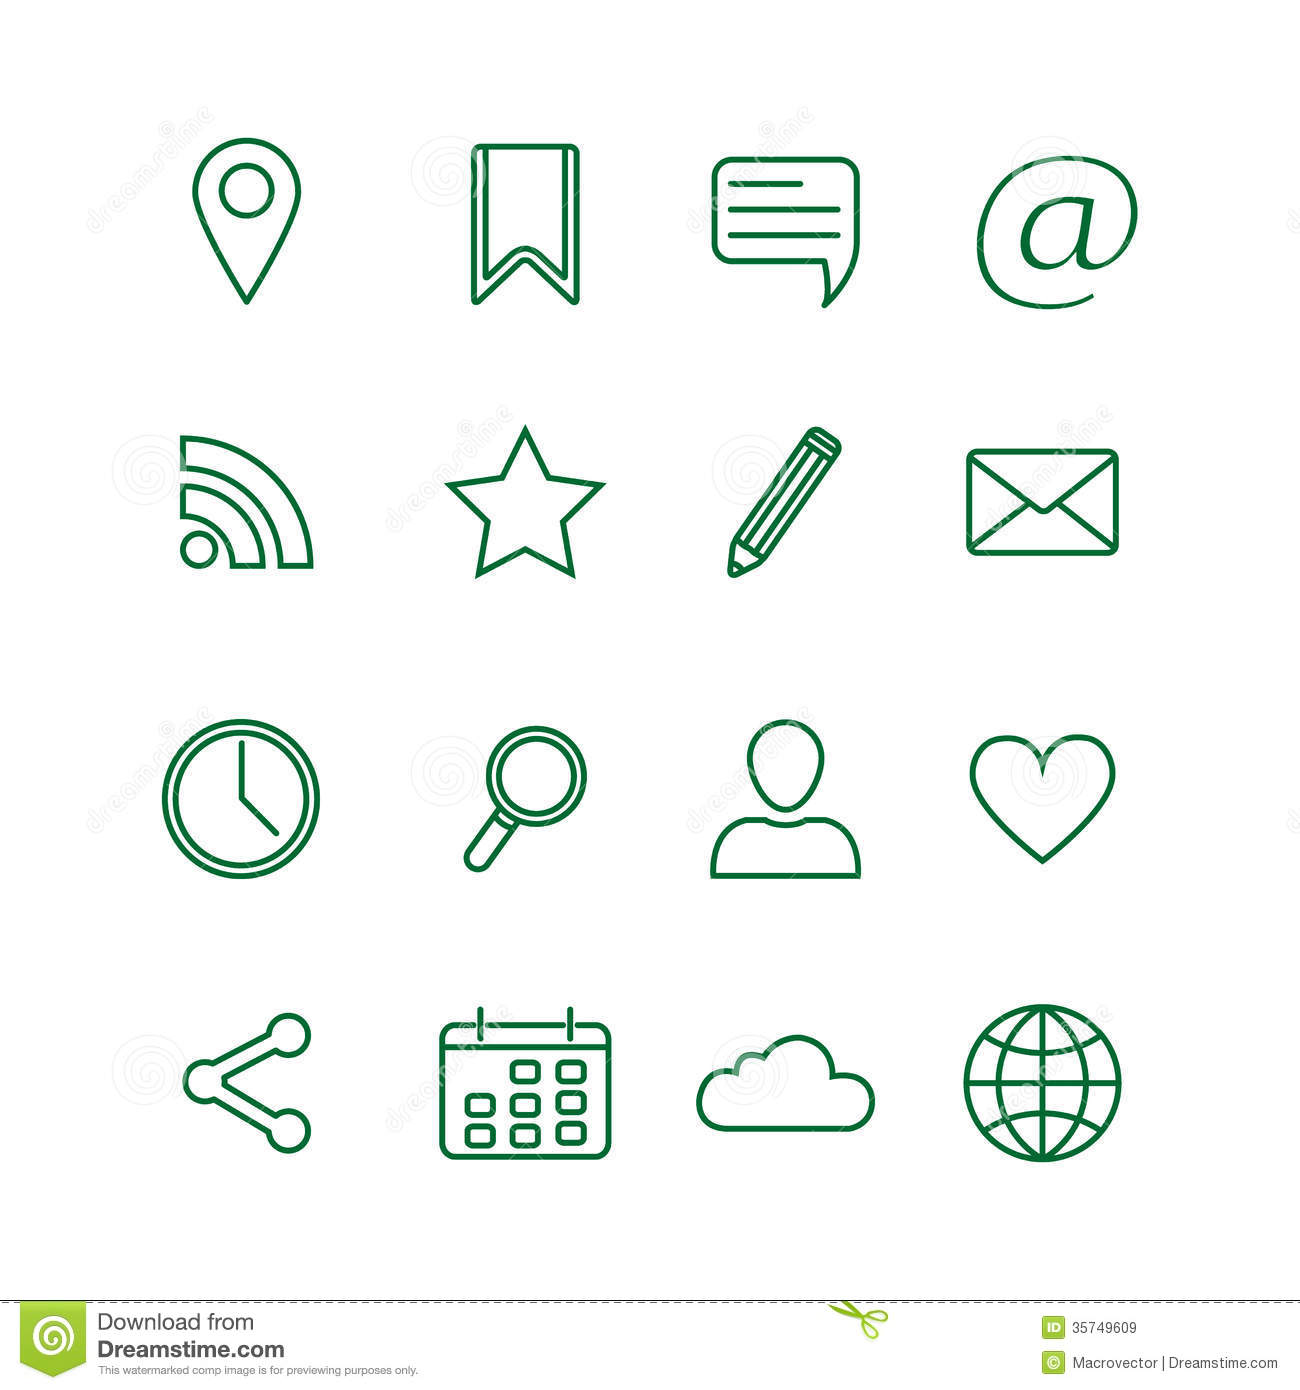 Generic social media clipart graphic freeuse stock Generic social media clipart - ClipartFest graphic freeuse stock